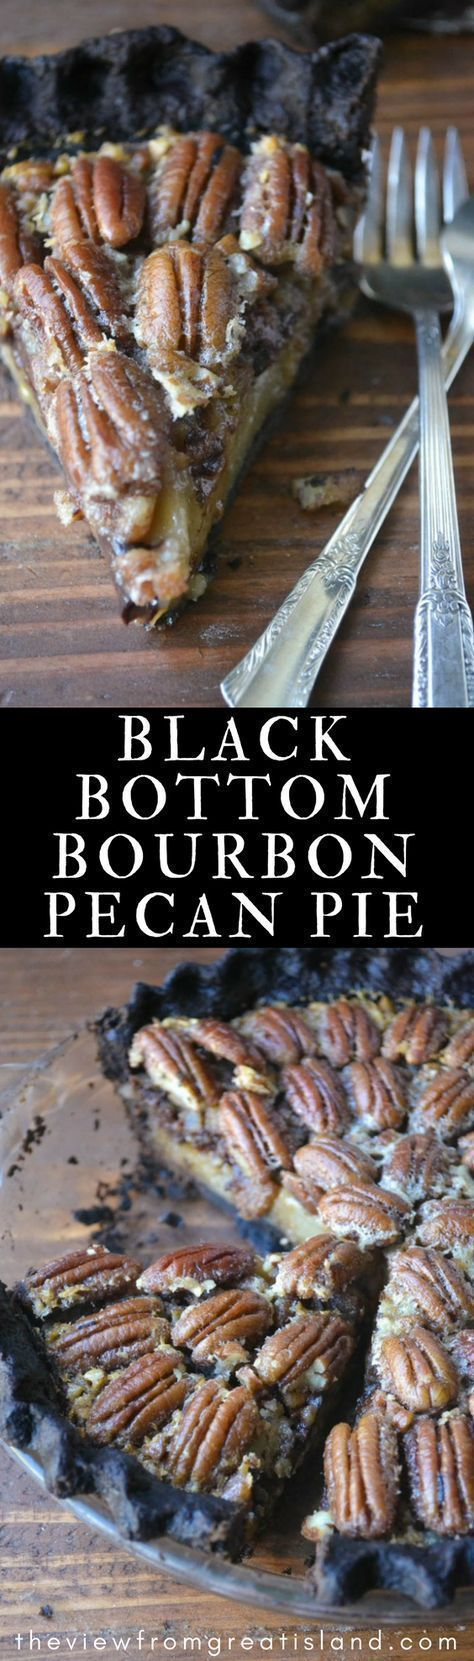 Bottom Bourbon Pecan Pie  Fruit Pies Tarts and Galette Recipes  Black Bottom Bourbon Pecan Pie  Fruit Pies Tarts and Galette Recipes Black Bottom Bourbon Pecan Pie  Fruit...